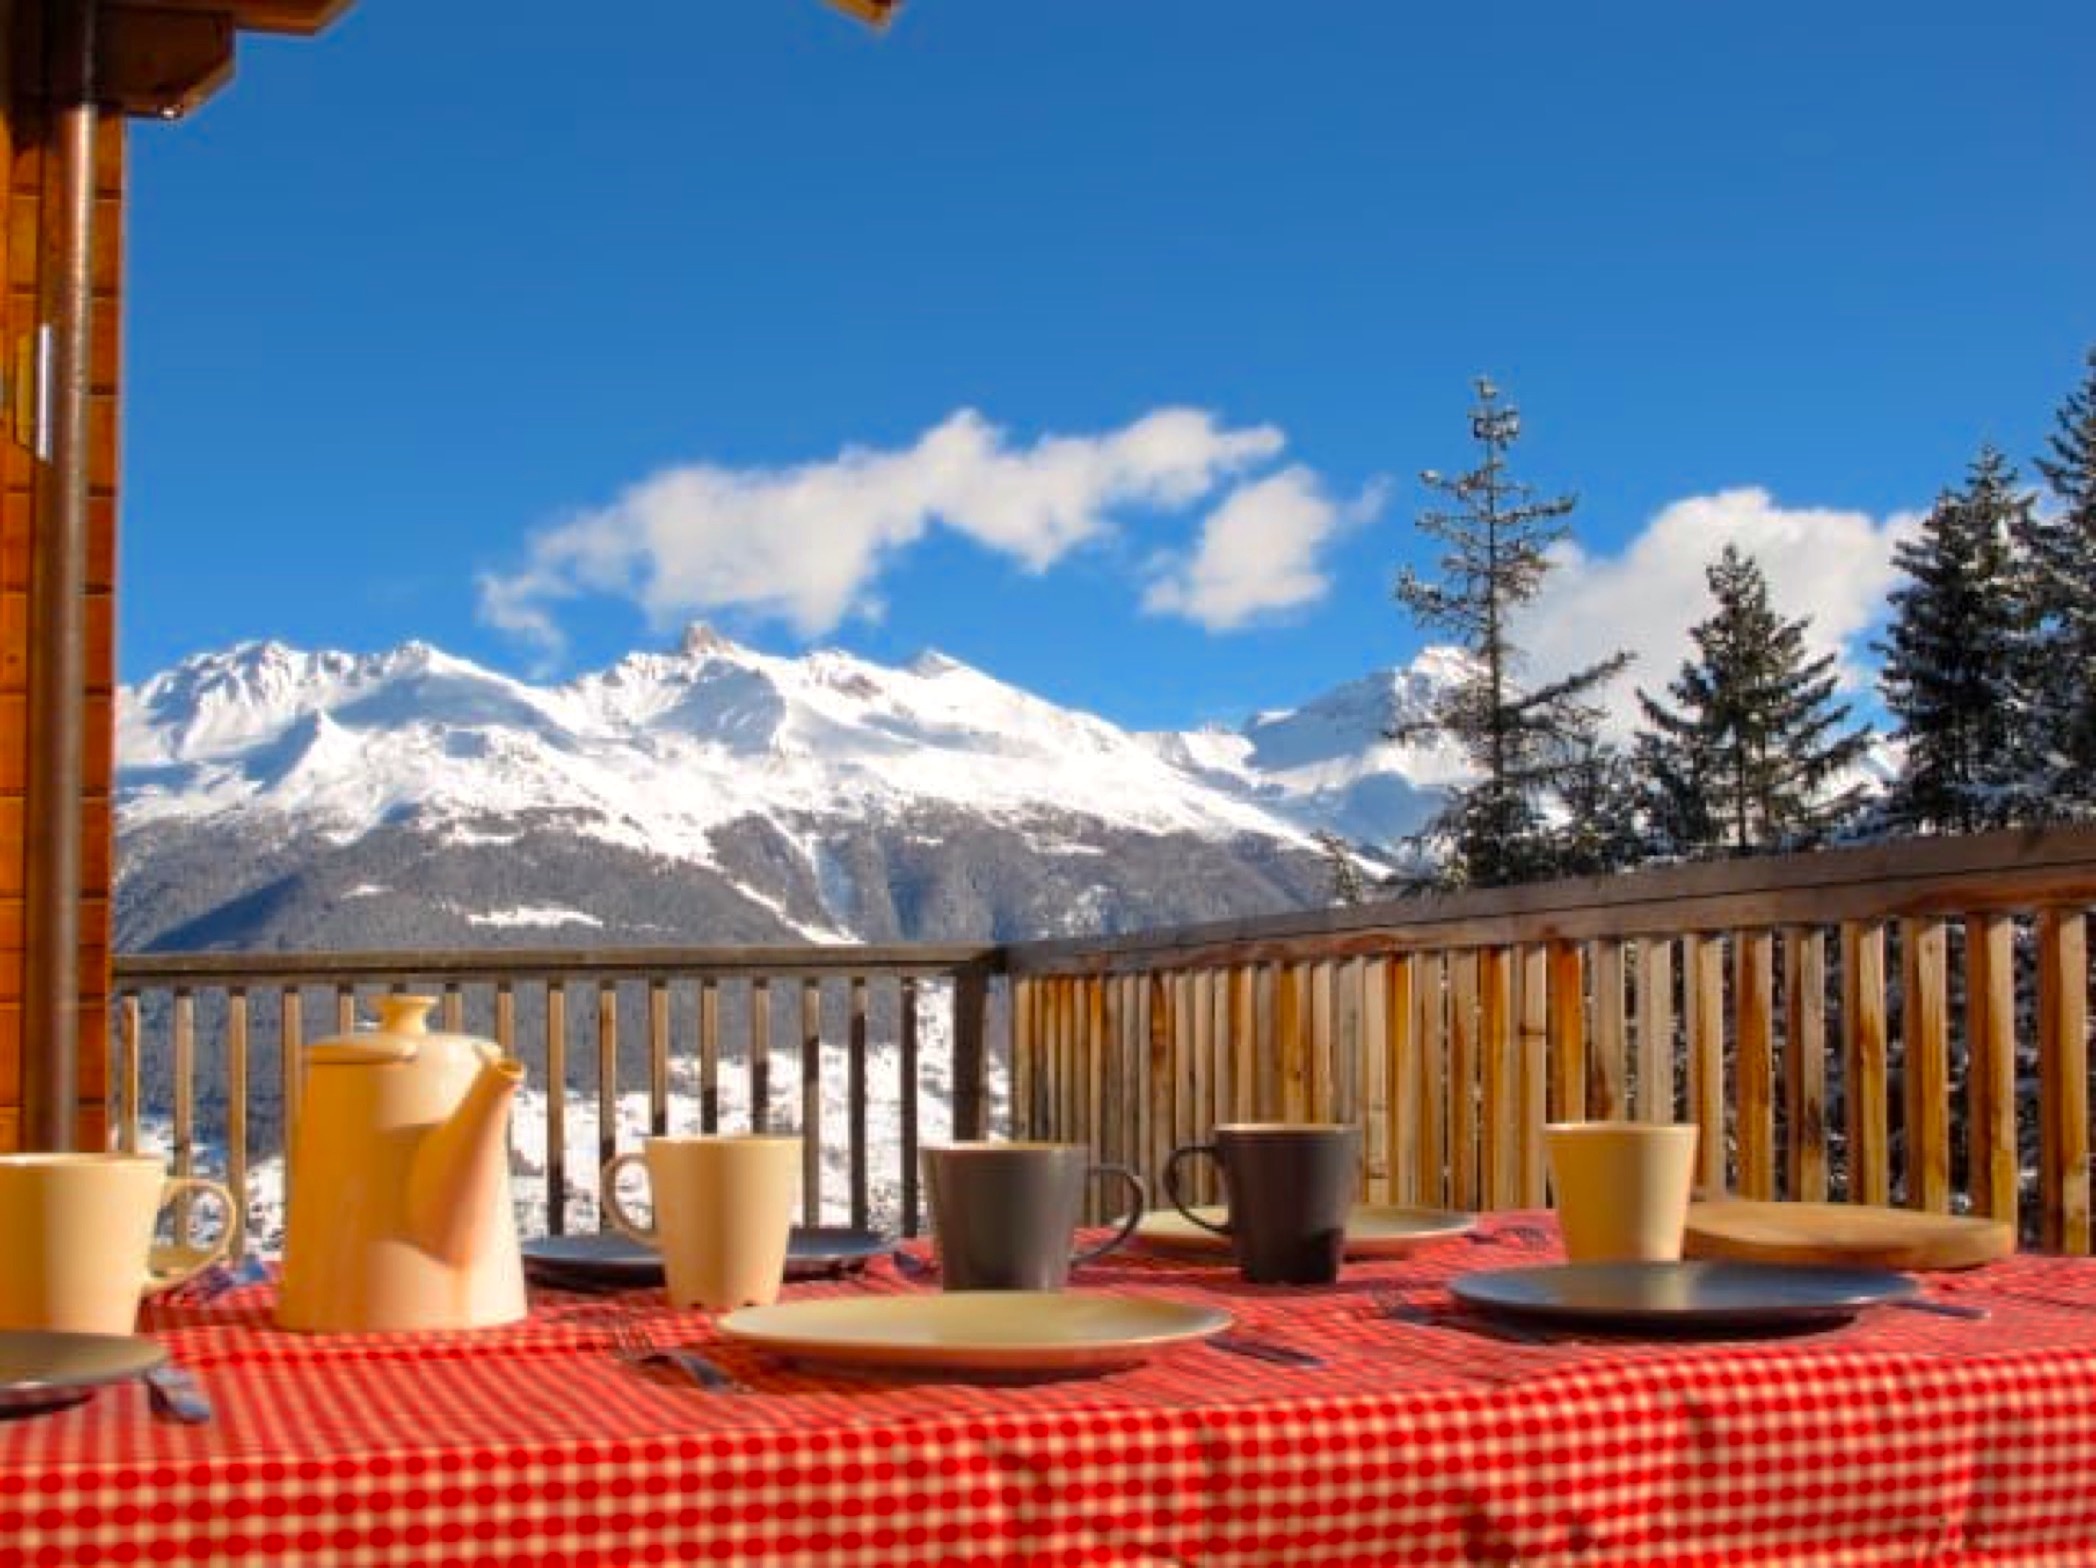 lunch on the balcony in winter